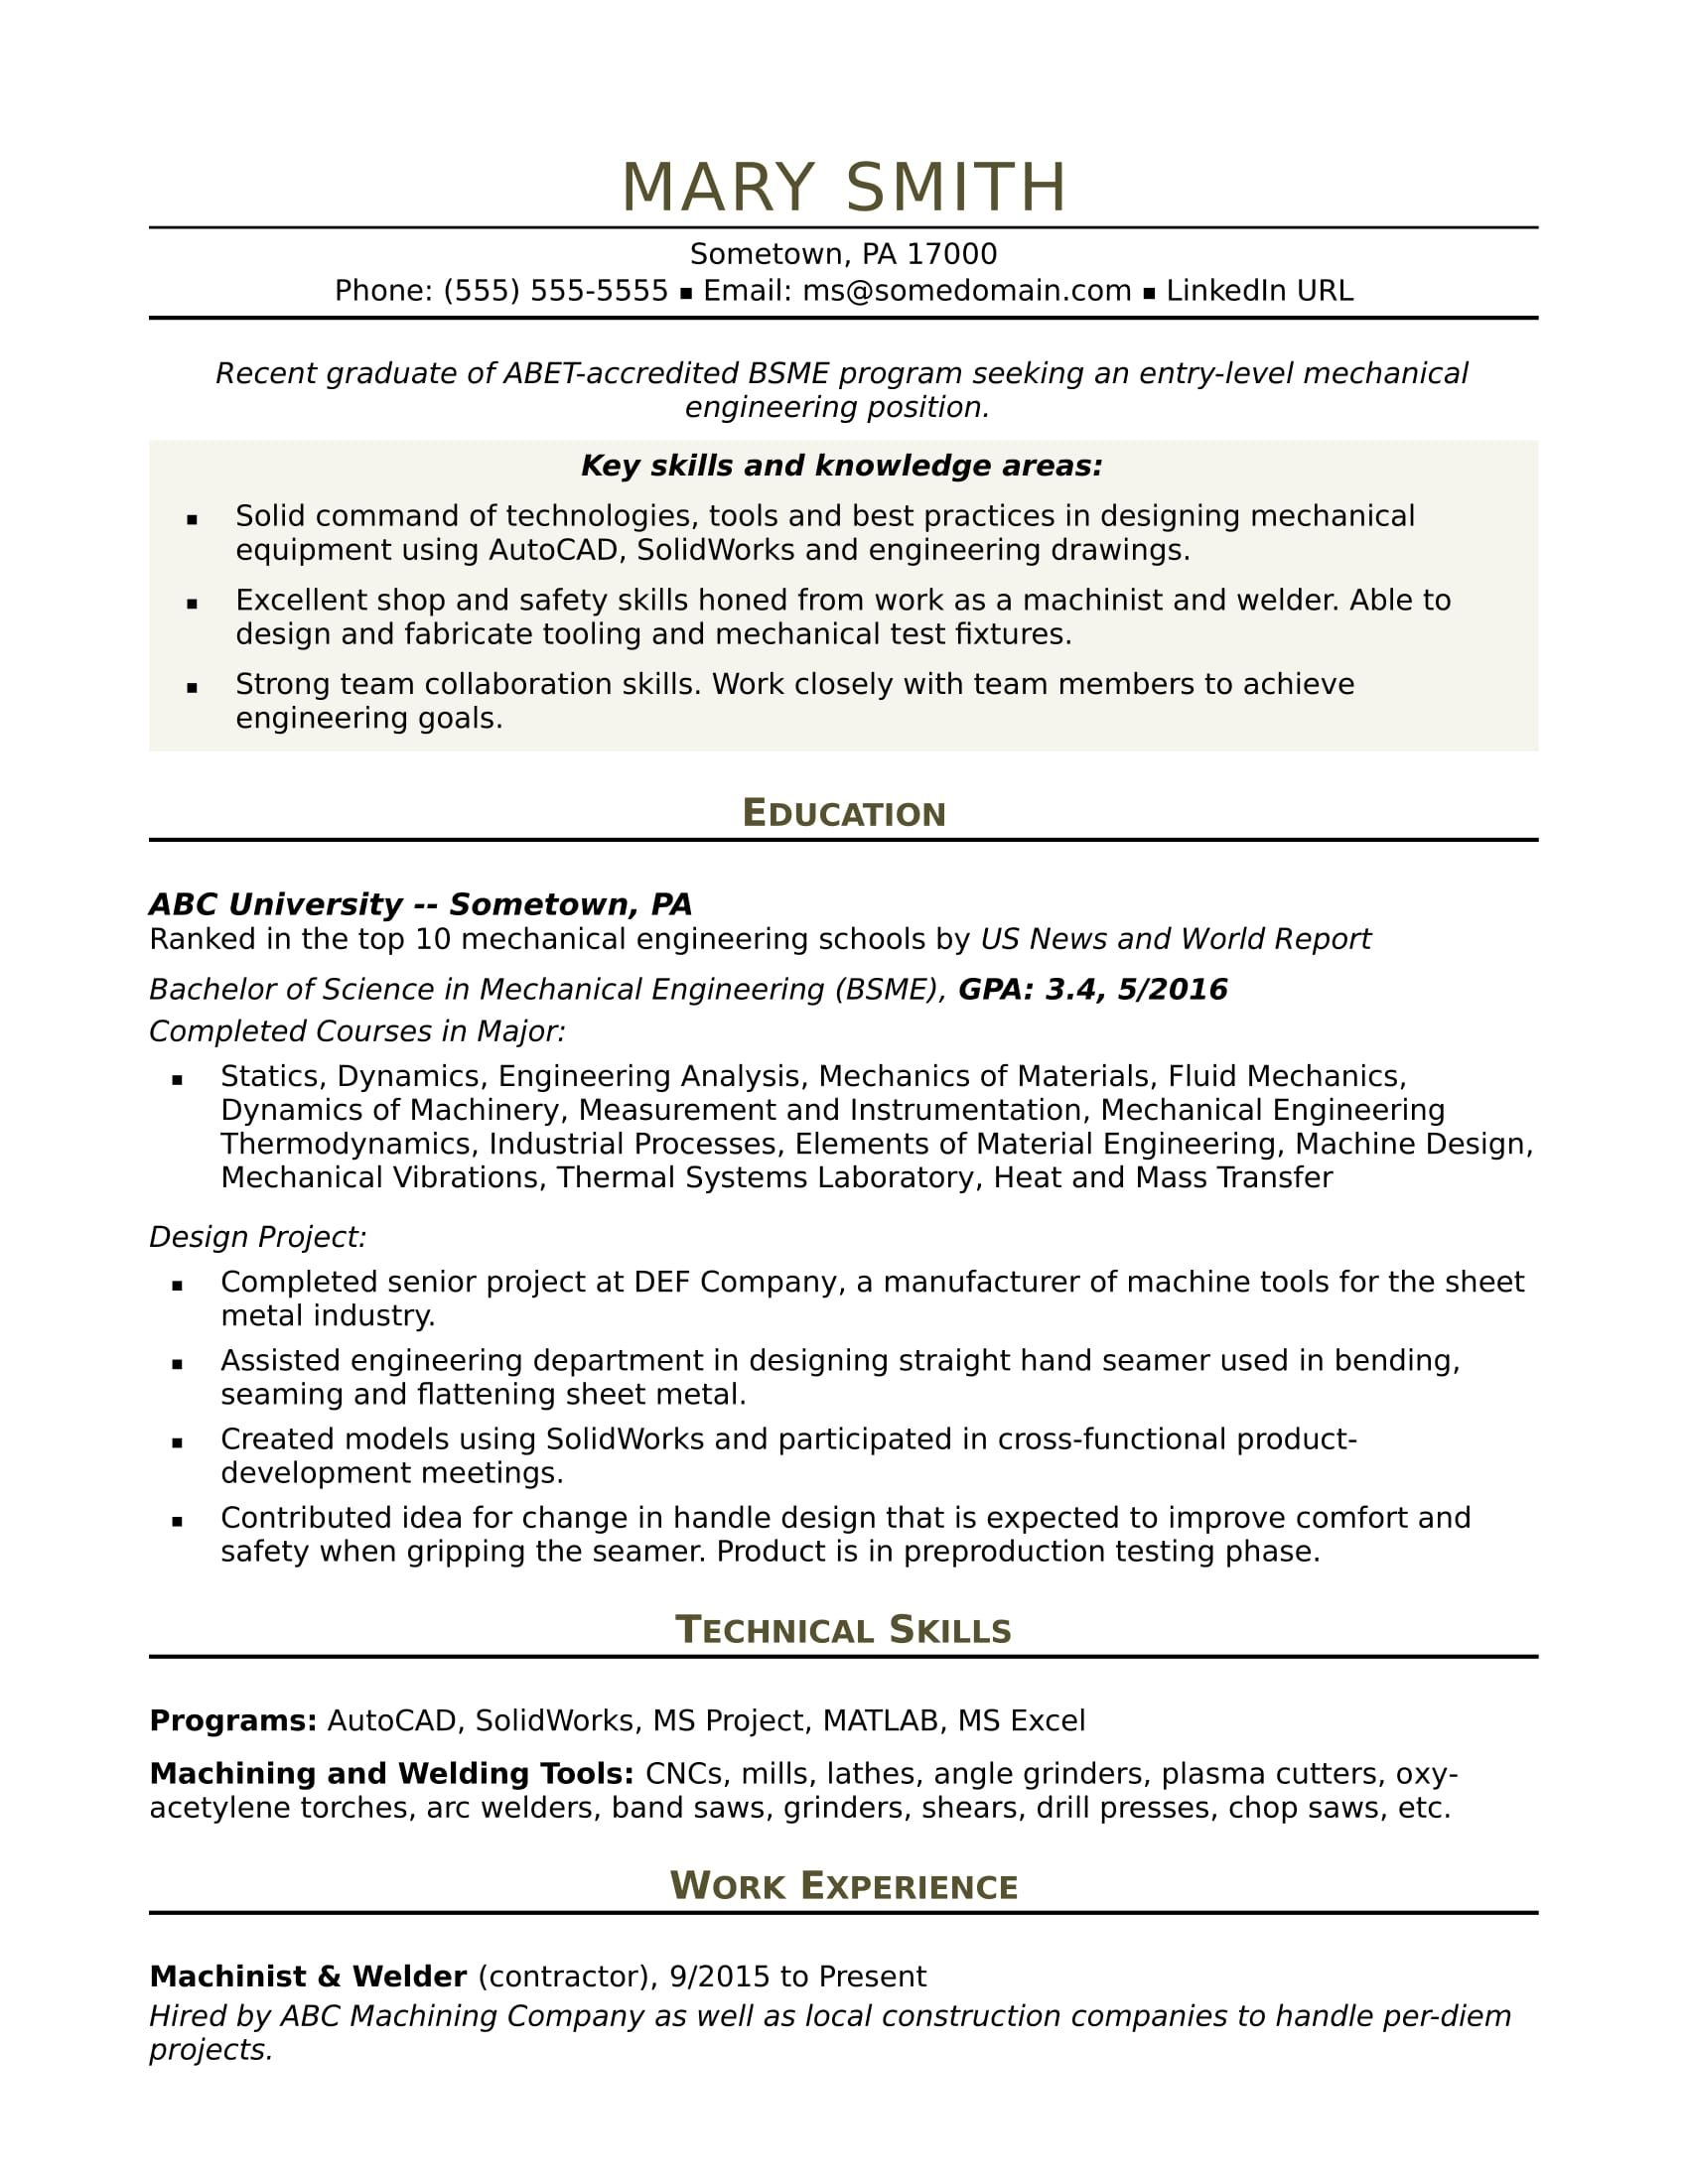 Sample resume for an entrylevel mechanical engineer